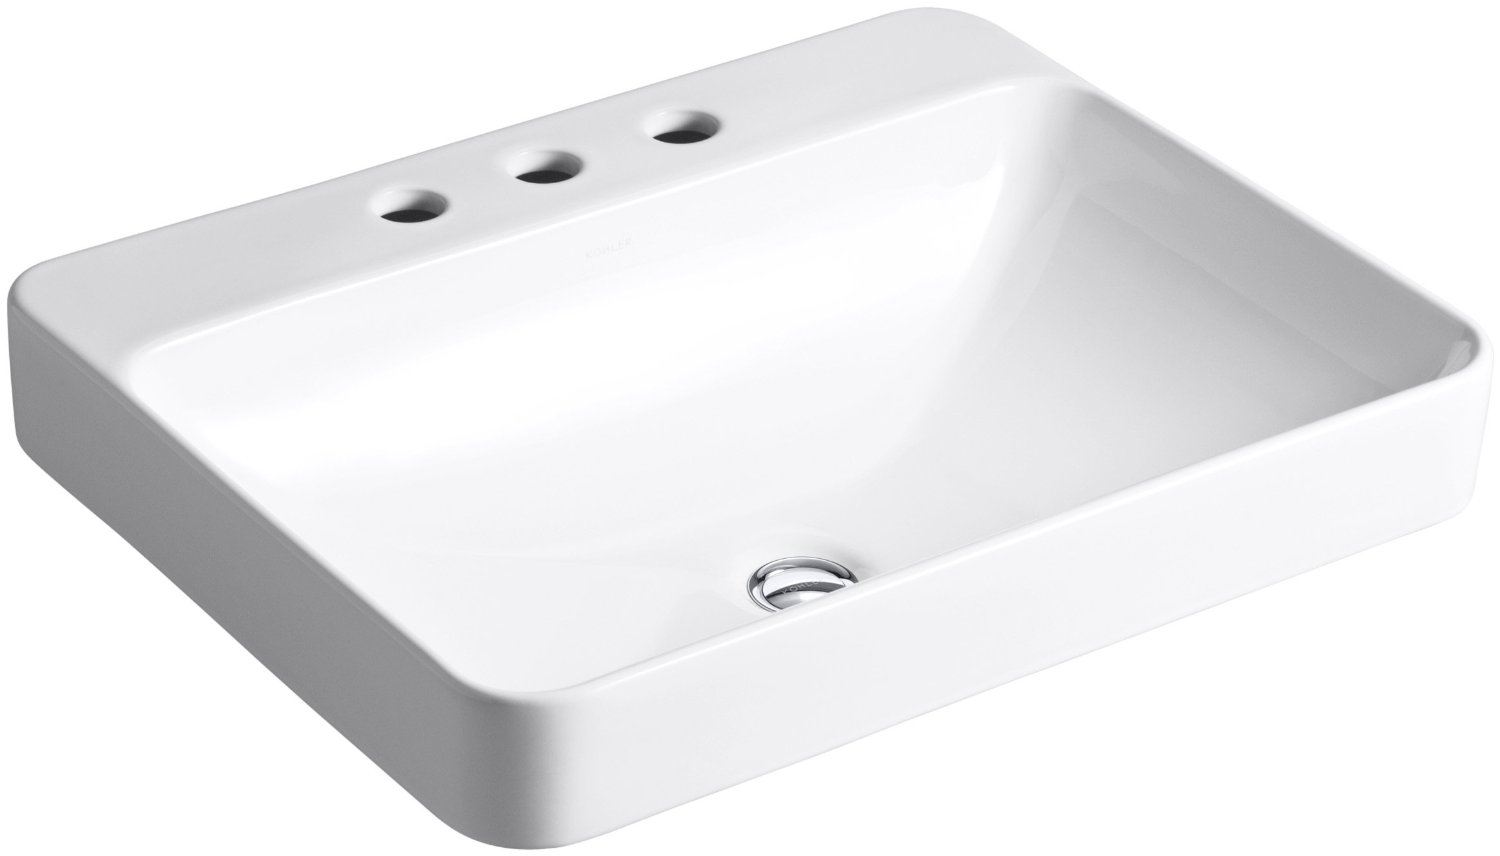 Top 10 Best Kohler Sinks — Reviews, Guides and Top Picks 2019